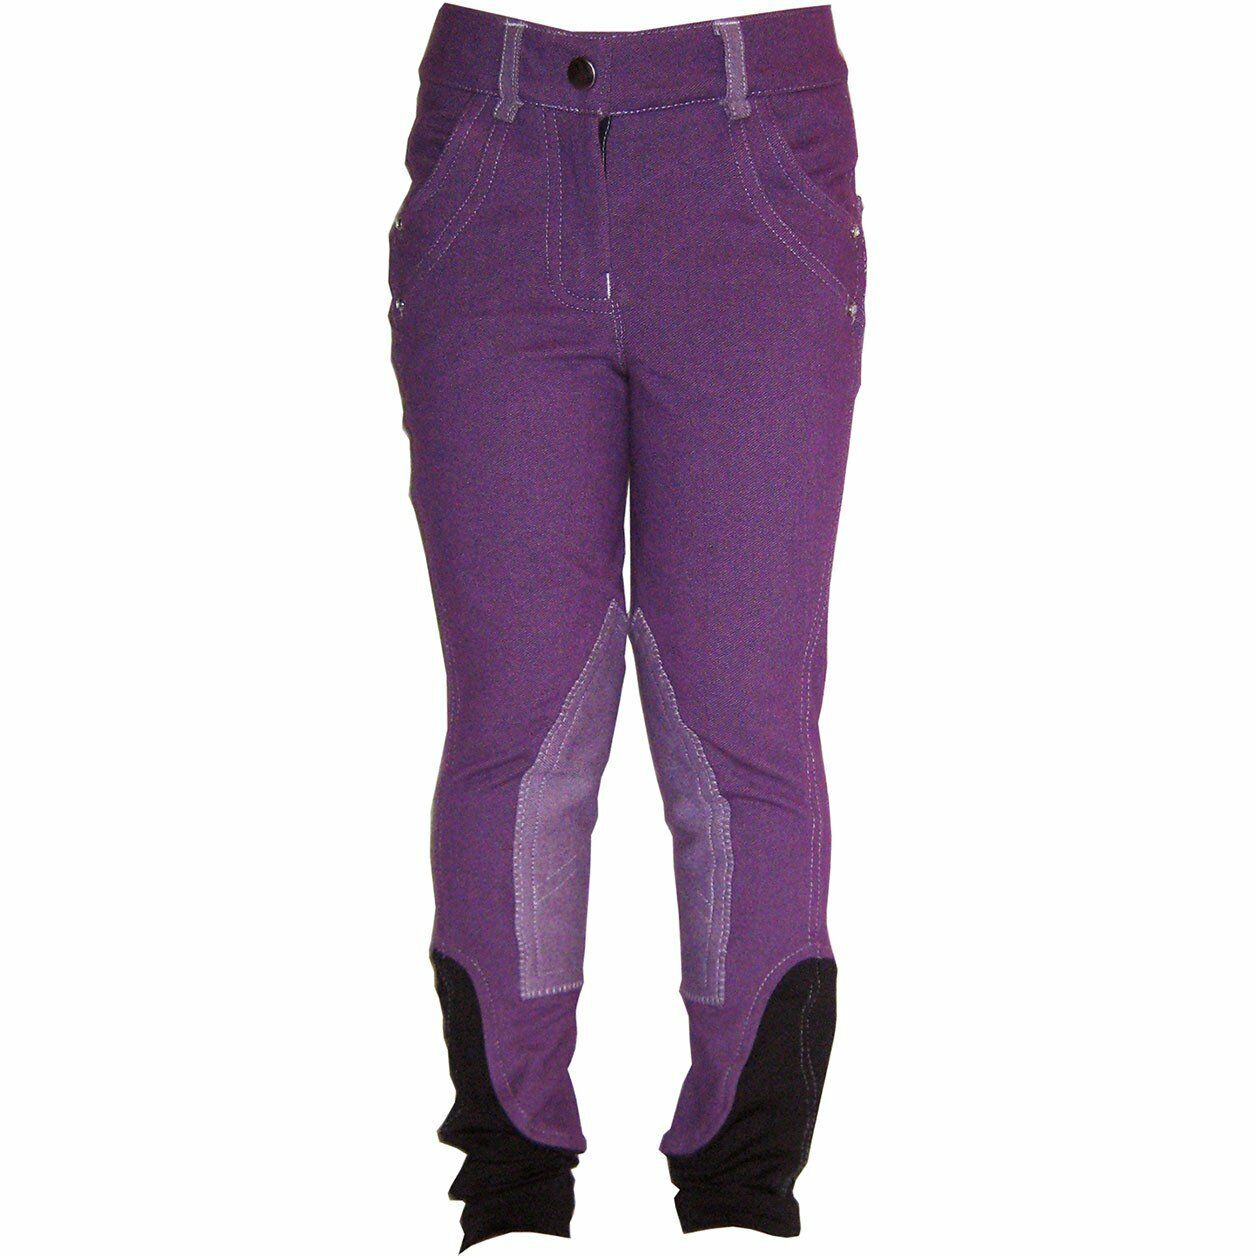 Horseware Junior Knitted Denim Kids Pants Riding Breeches - Purple All Sizes